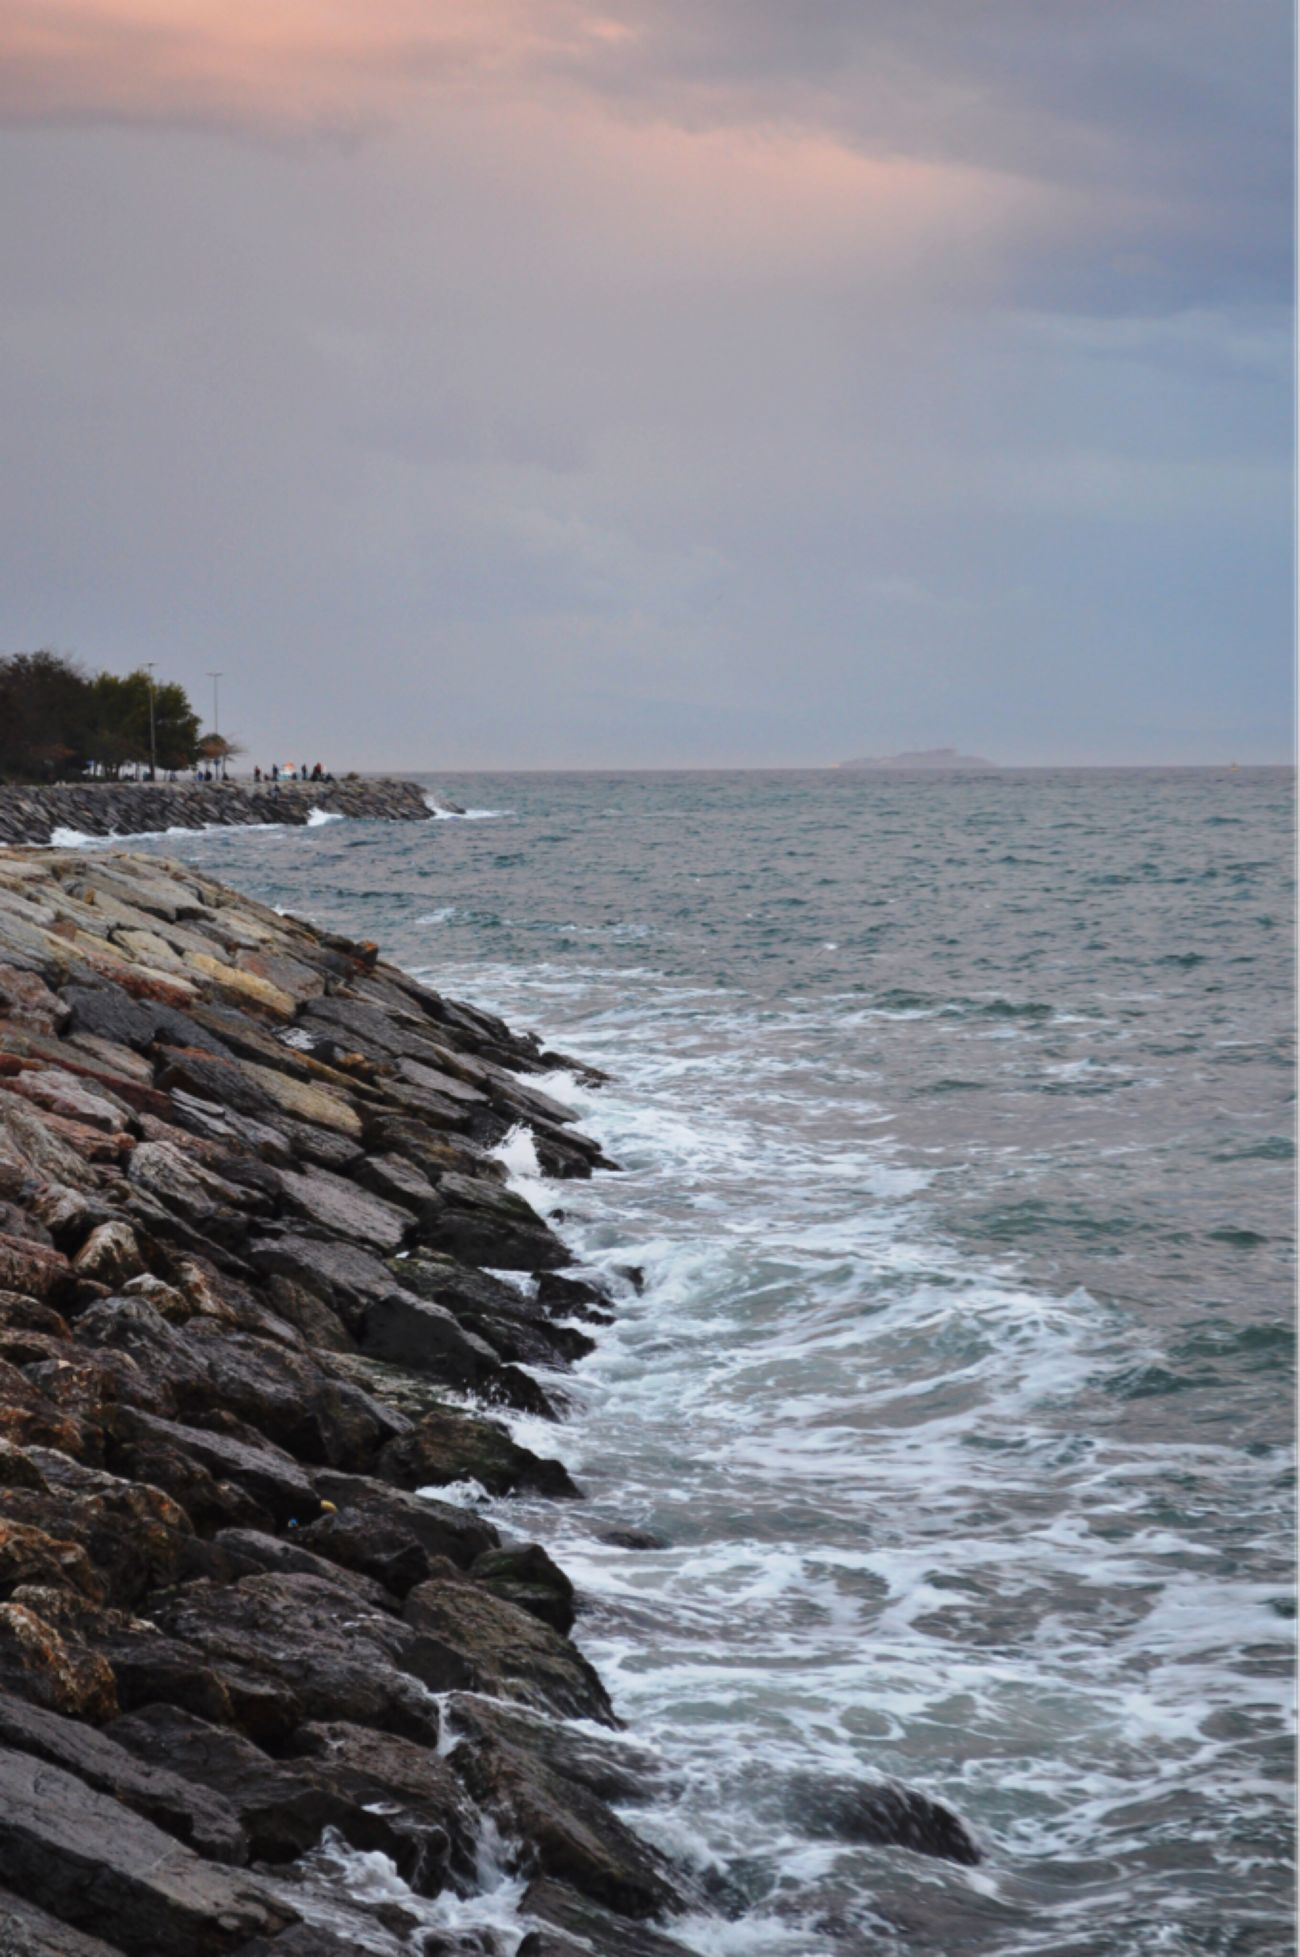 Sea Nature Sky Water Scenics Horizon Over Water Beach Beauty In Nature No People Outdoors Day